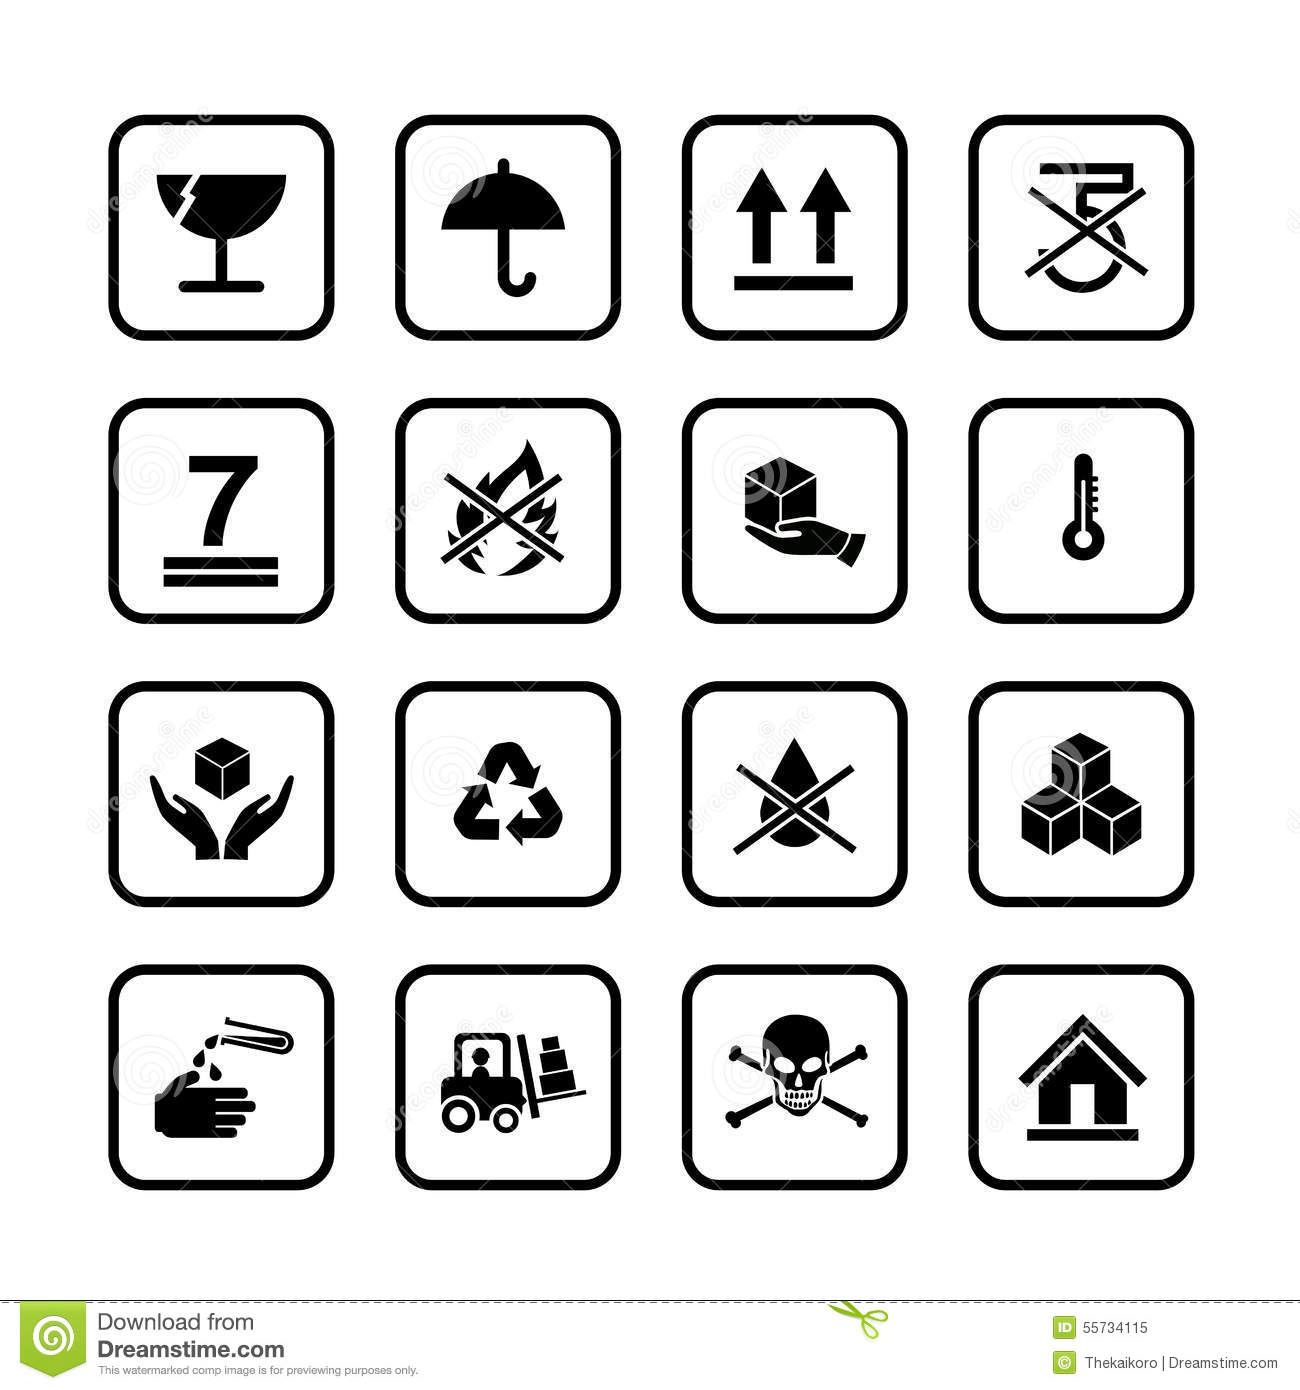 Stock Illustration Set Packing Symbols Icon Box White Background Vector Illustration Eps Image55734115 moreover 160814204222 further App as well Parish Priest Accused Of Forging Church Documents A Few Questions And Copy Of Fir moreover Corner. on warning cards